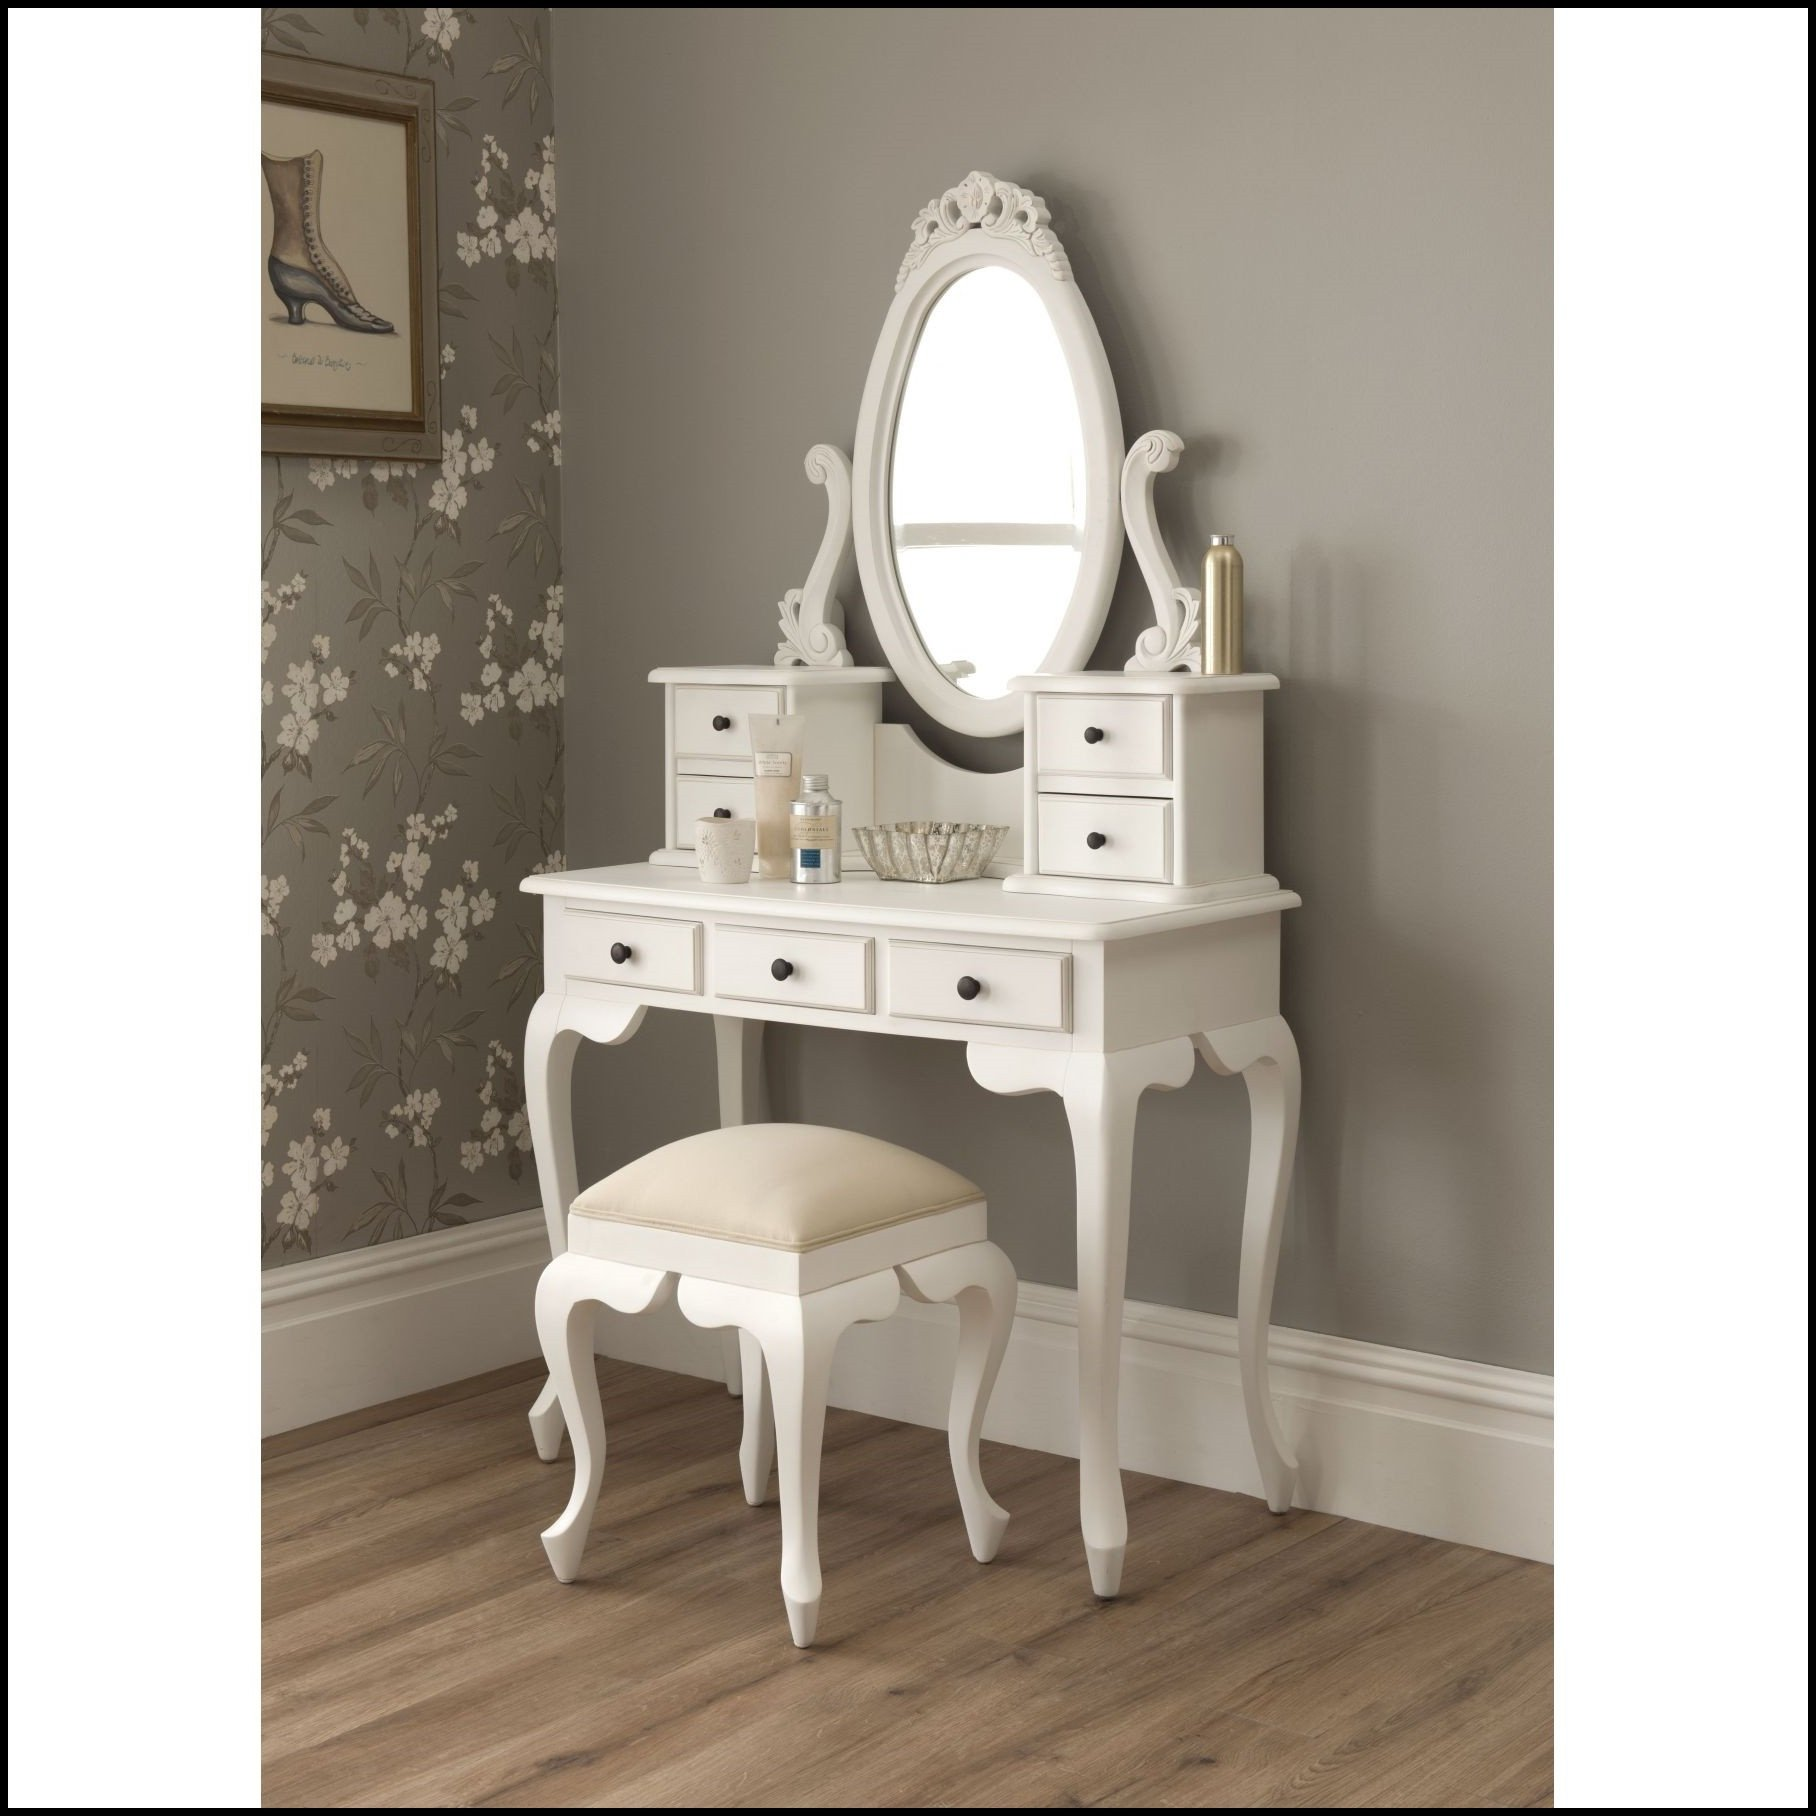 Make Up Vanity for Bedroom Best Of Western Makeup Vanity